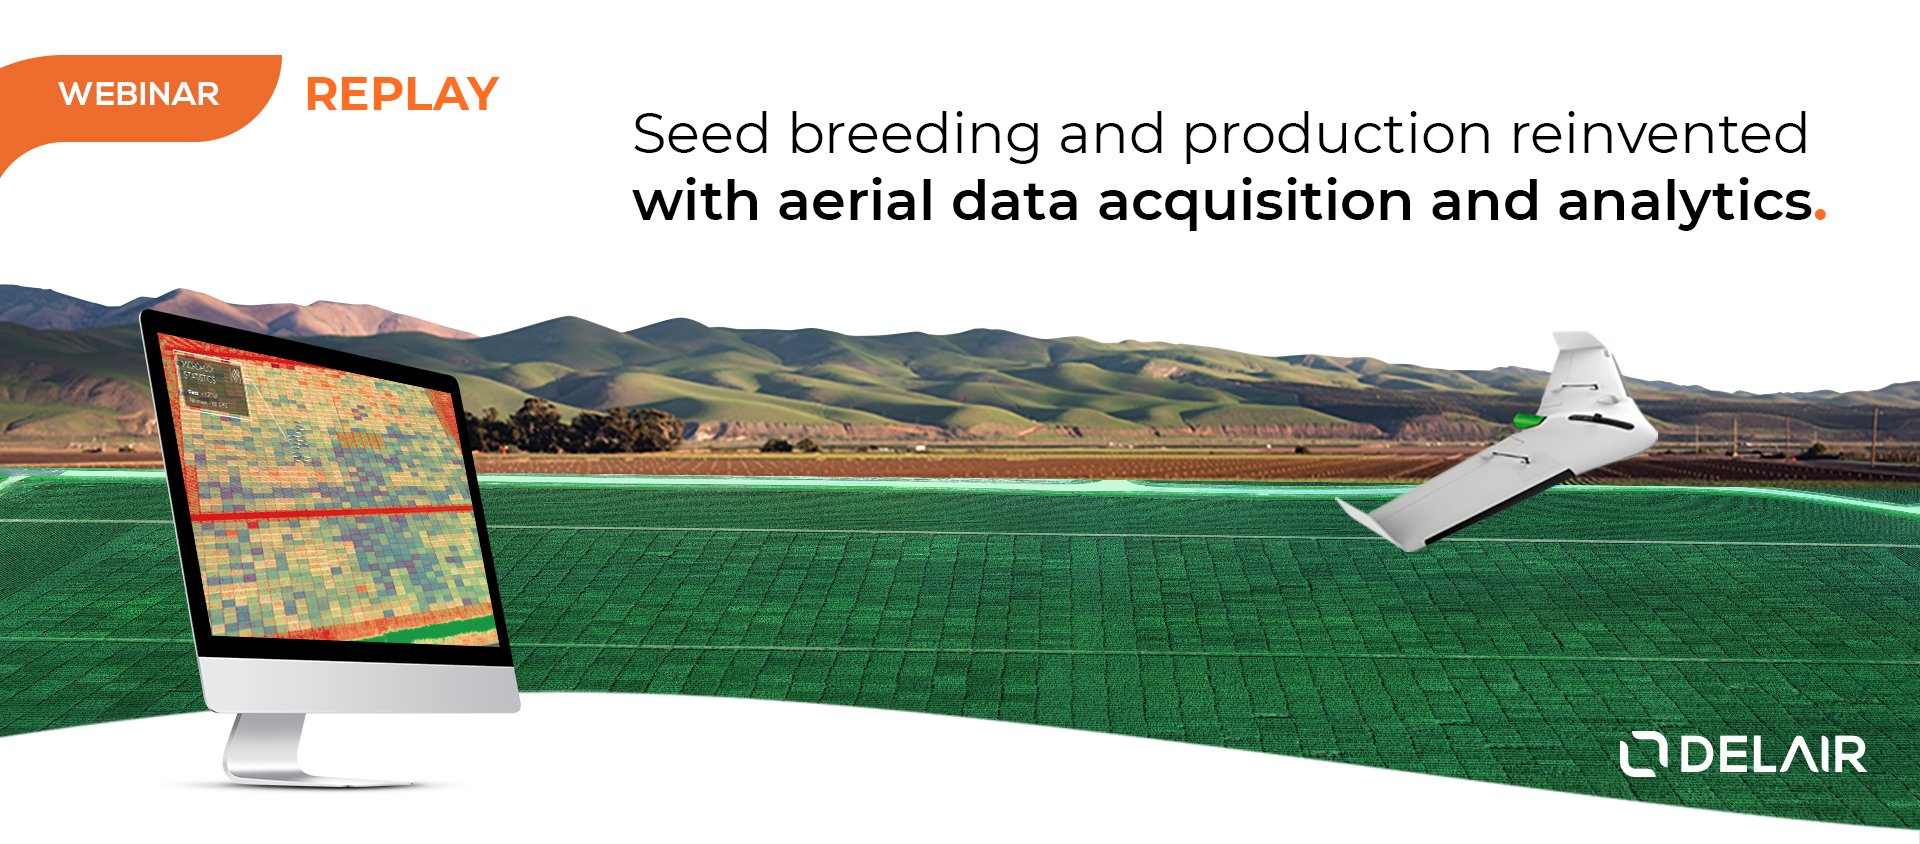 Seed breeding and production with aerial data drone and cloud computing drone data analytics